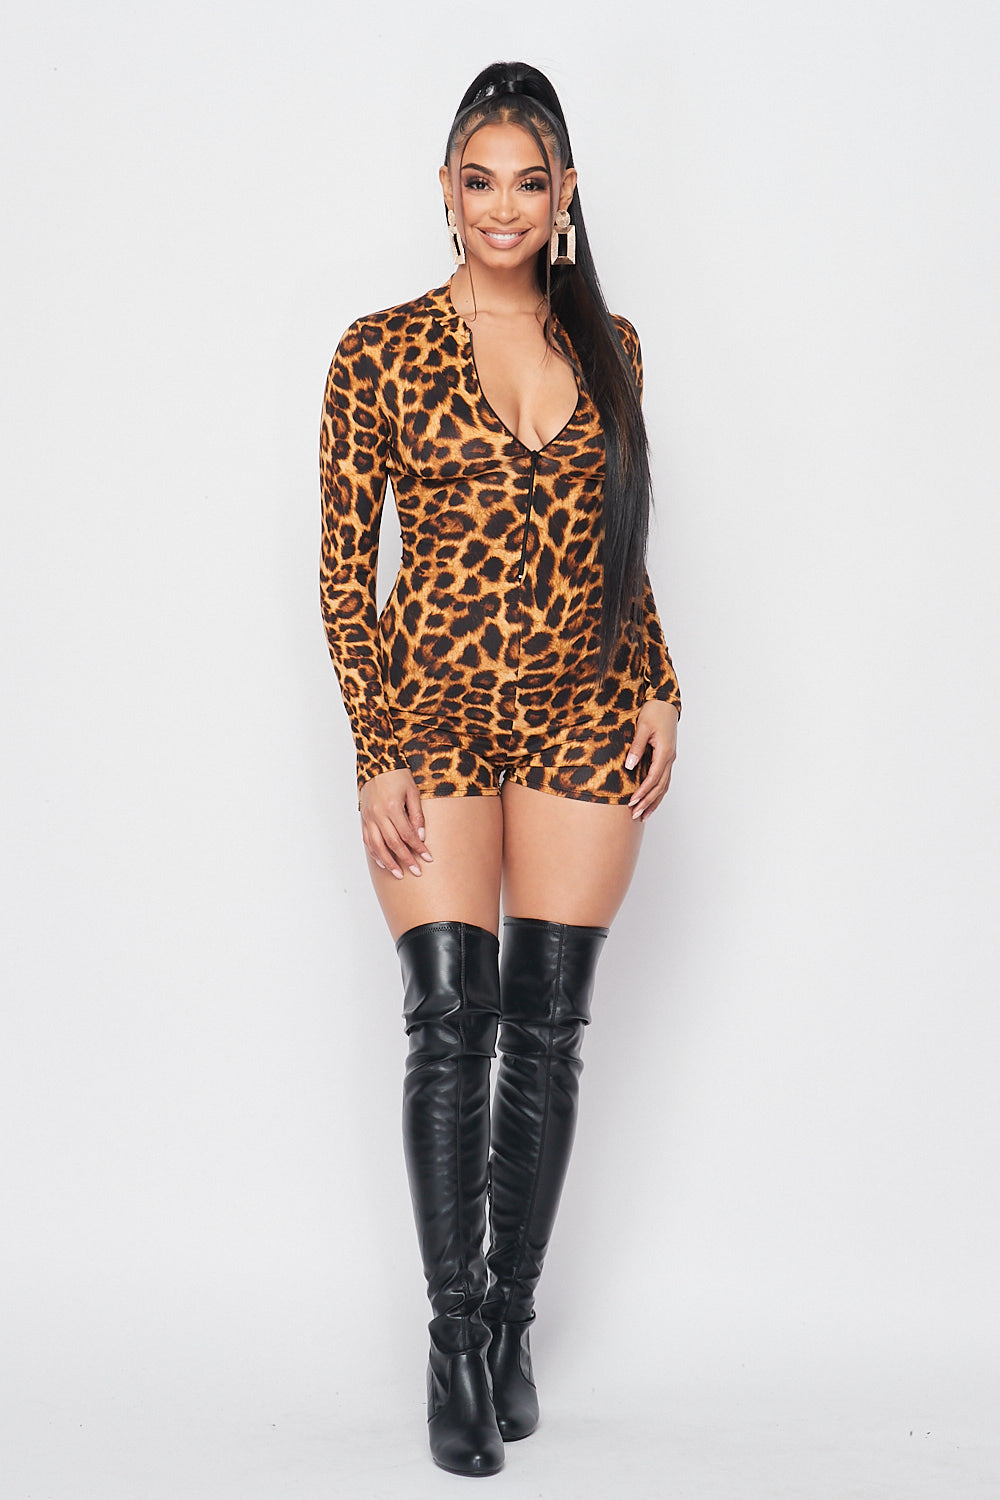 Long Sleeve Leopard Romper with front Zipper Detail - Fashion House USA